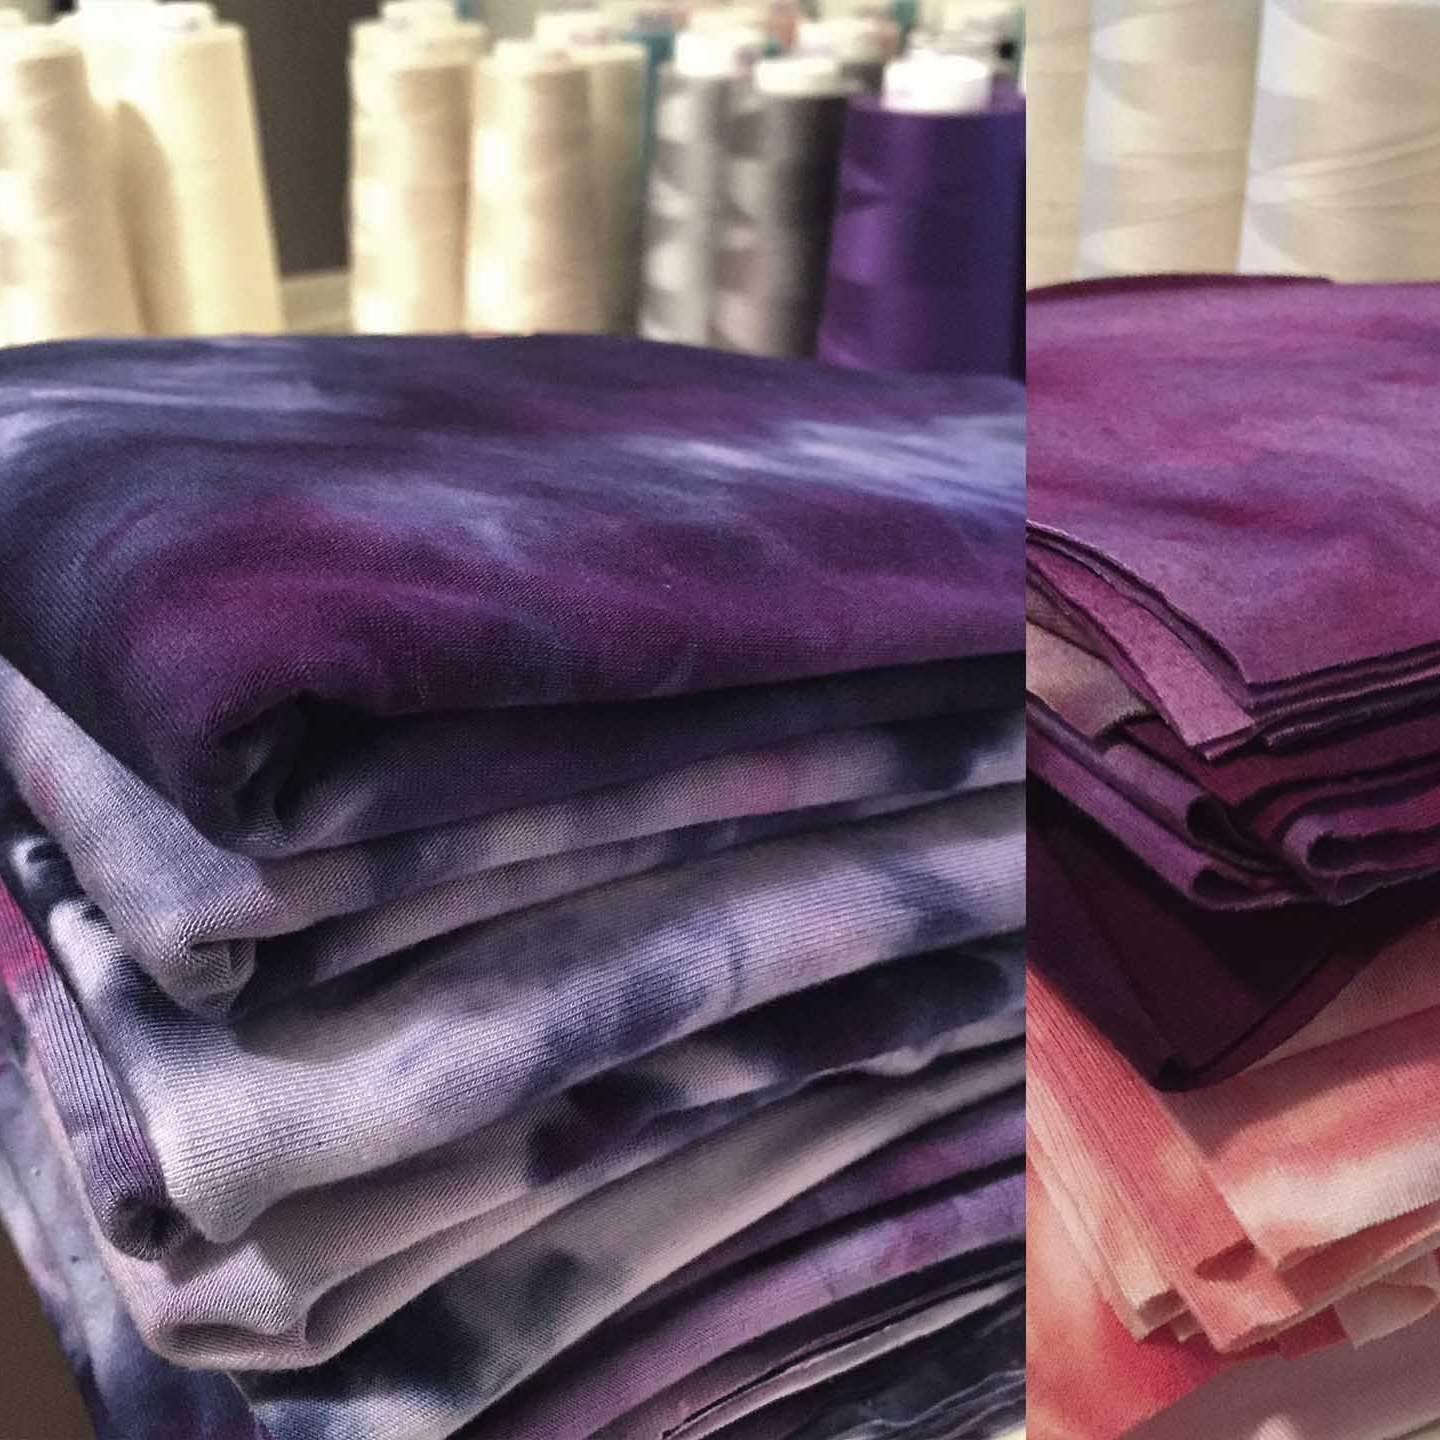 After our bamboo fabrics are preshrunk and hand-dyed, our seamstresses hand-cut and assemble each garment. Our clothing is luxury soft with a gentle drape. We stand behind our classic shapes & clean designs for layering and building a wardrobe.